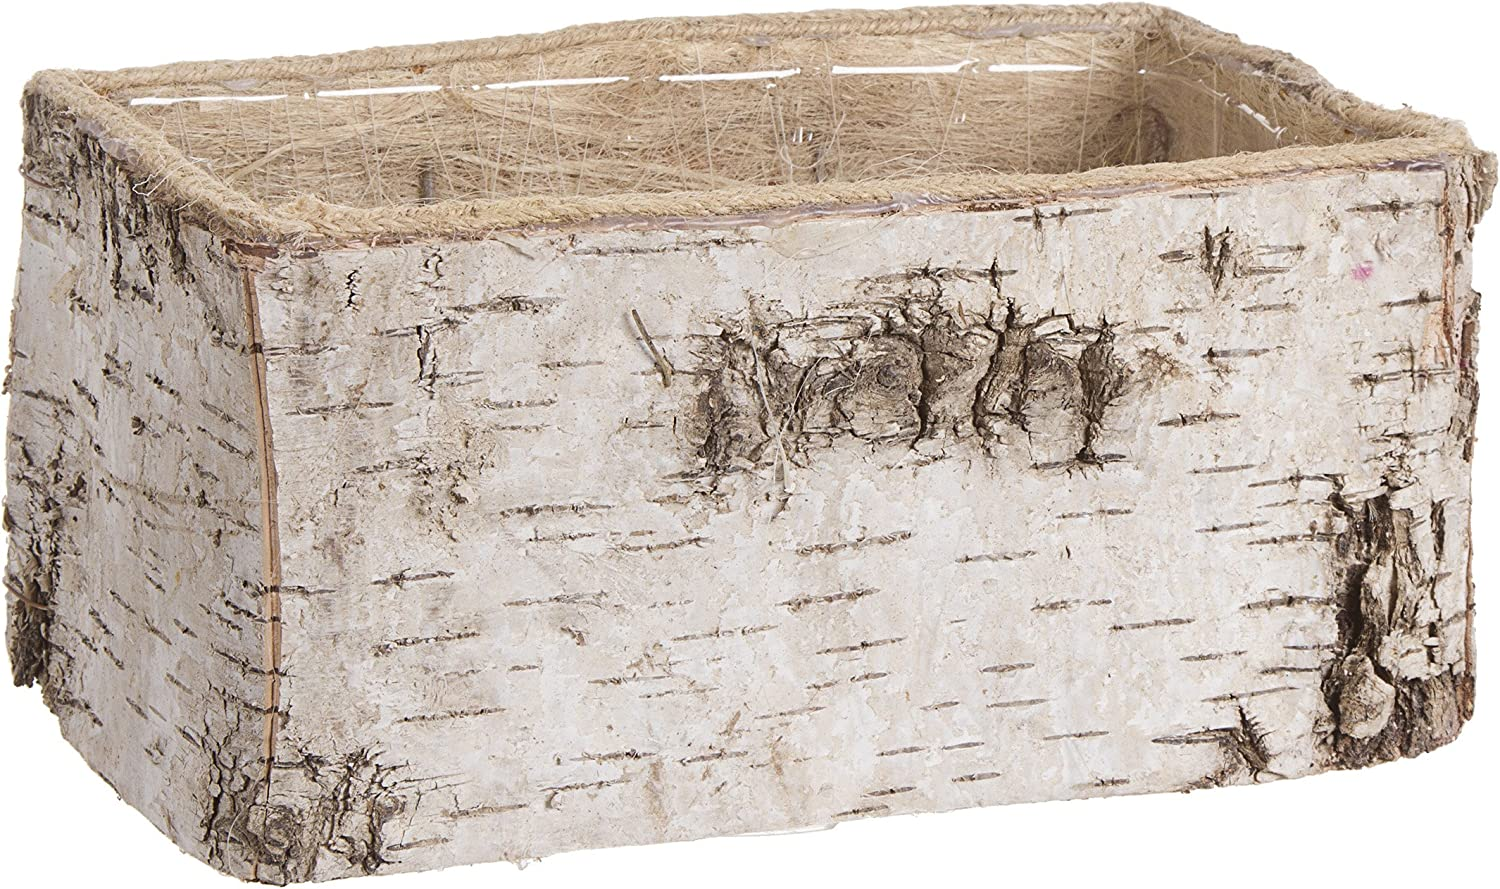 Darice 30007408 Craft Ideas and Home Decors, Rectangle Birch Planter, 10 x 5 inches, Natural, 1ct